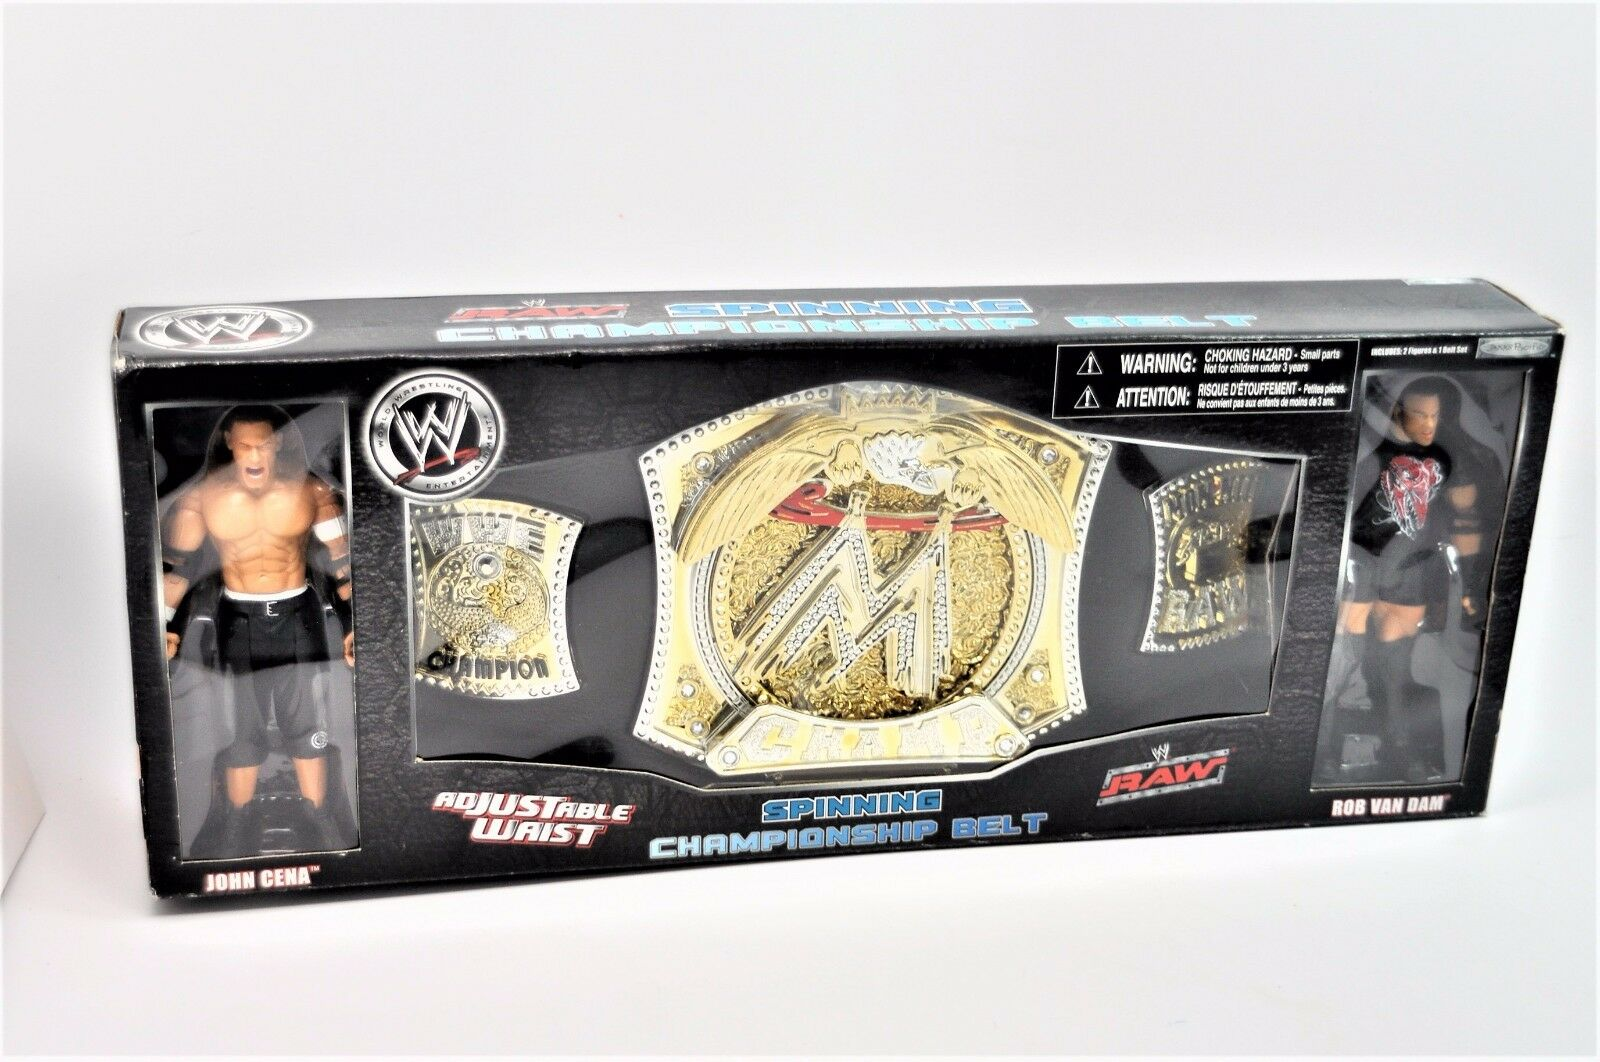 WWE Raw Spinning Championship Belt Figures Cena Van Dam RARE World Wrestling